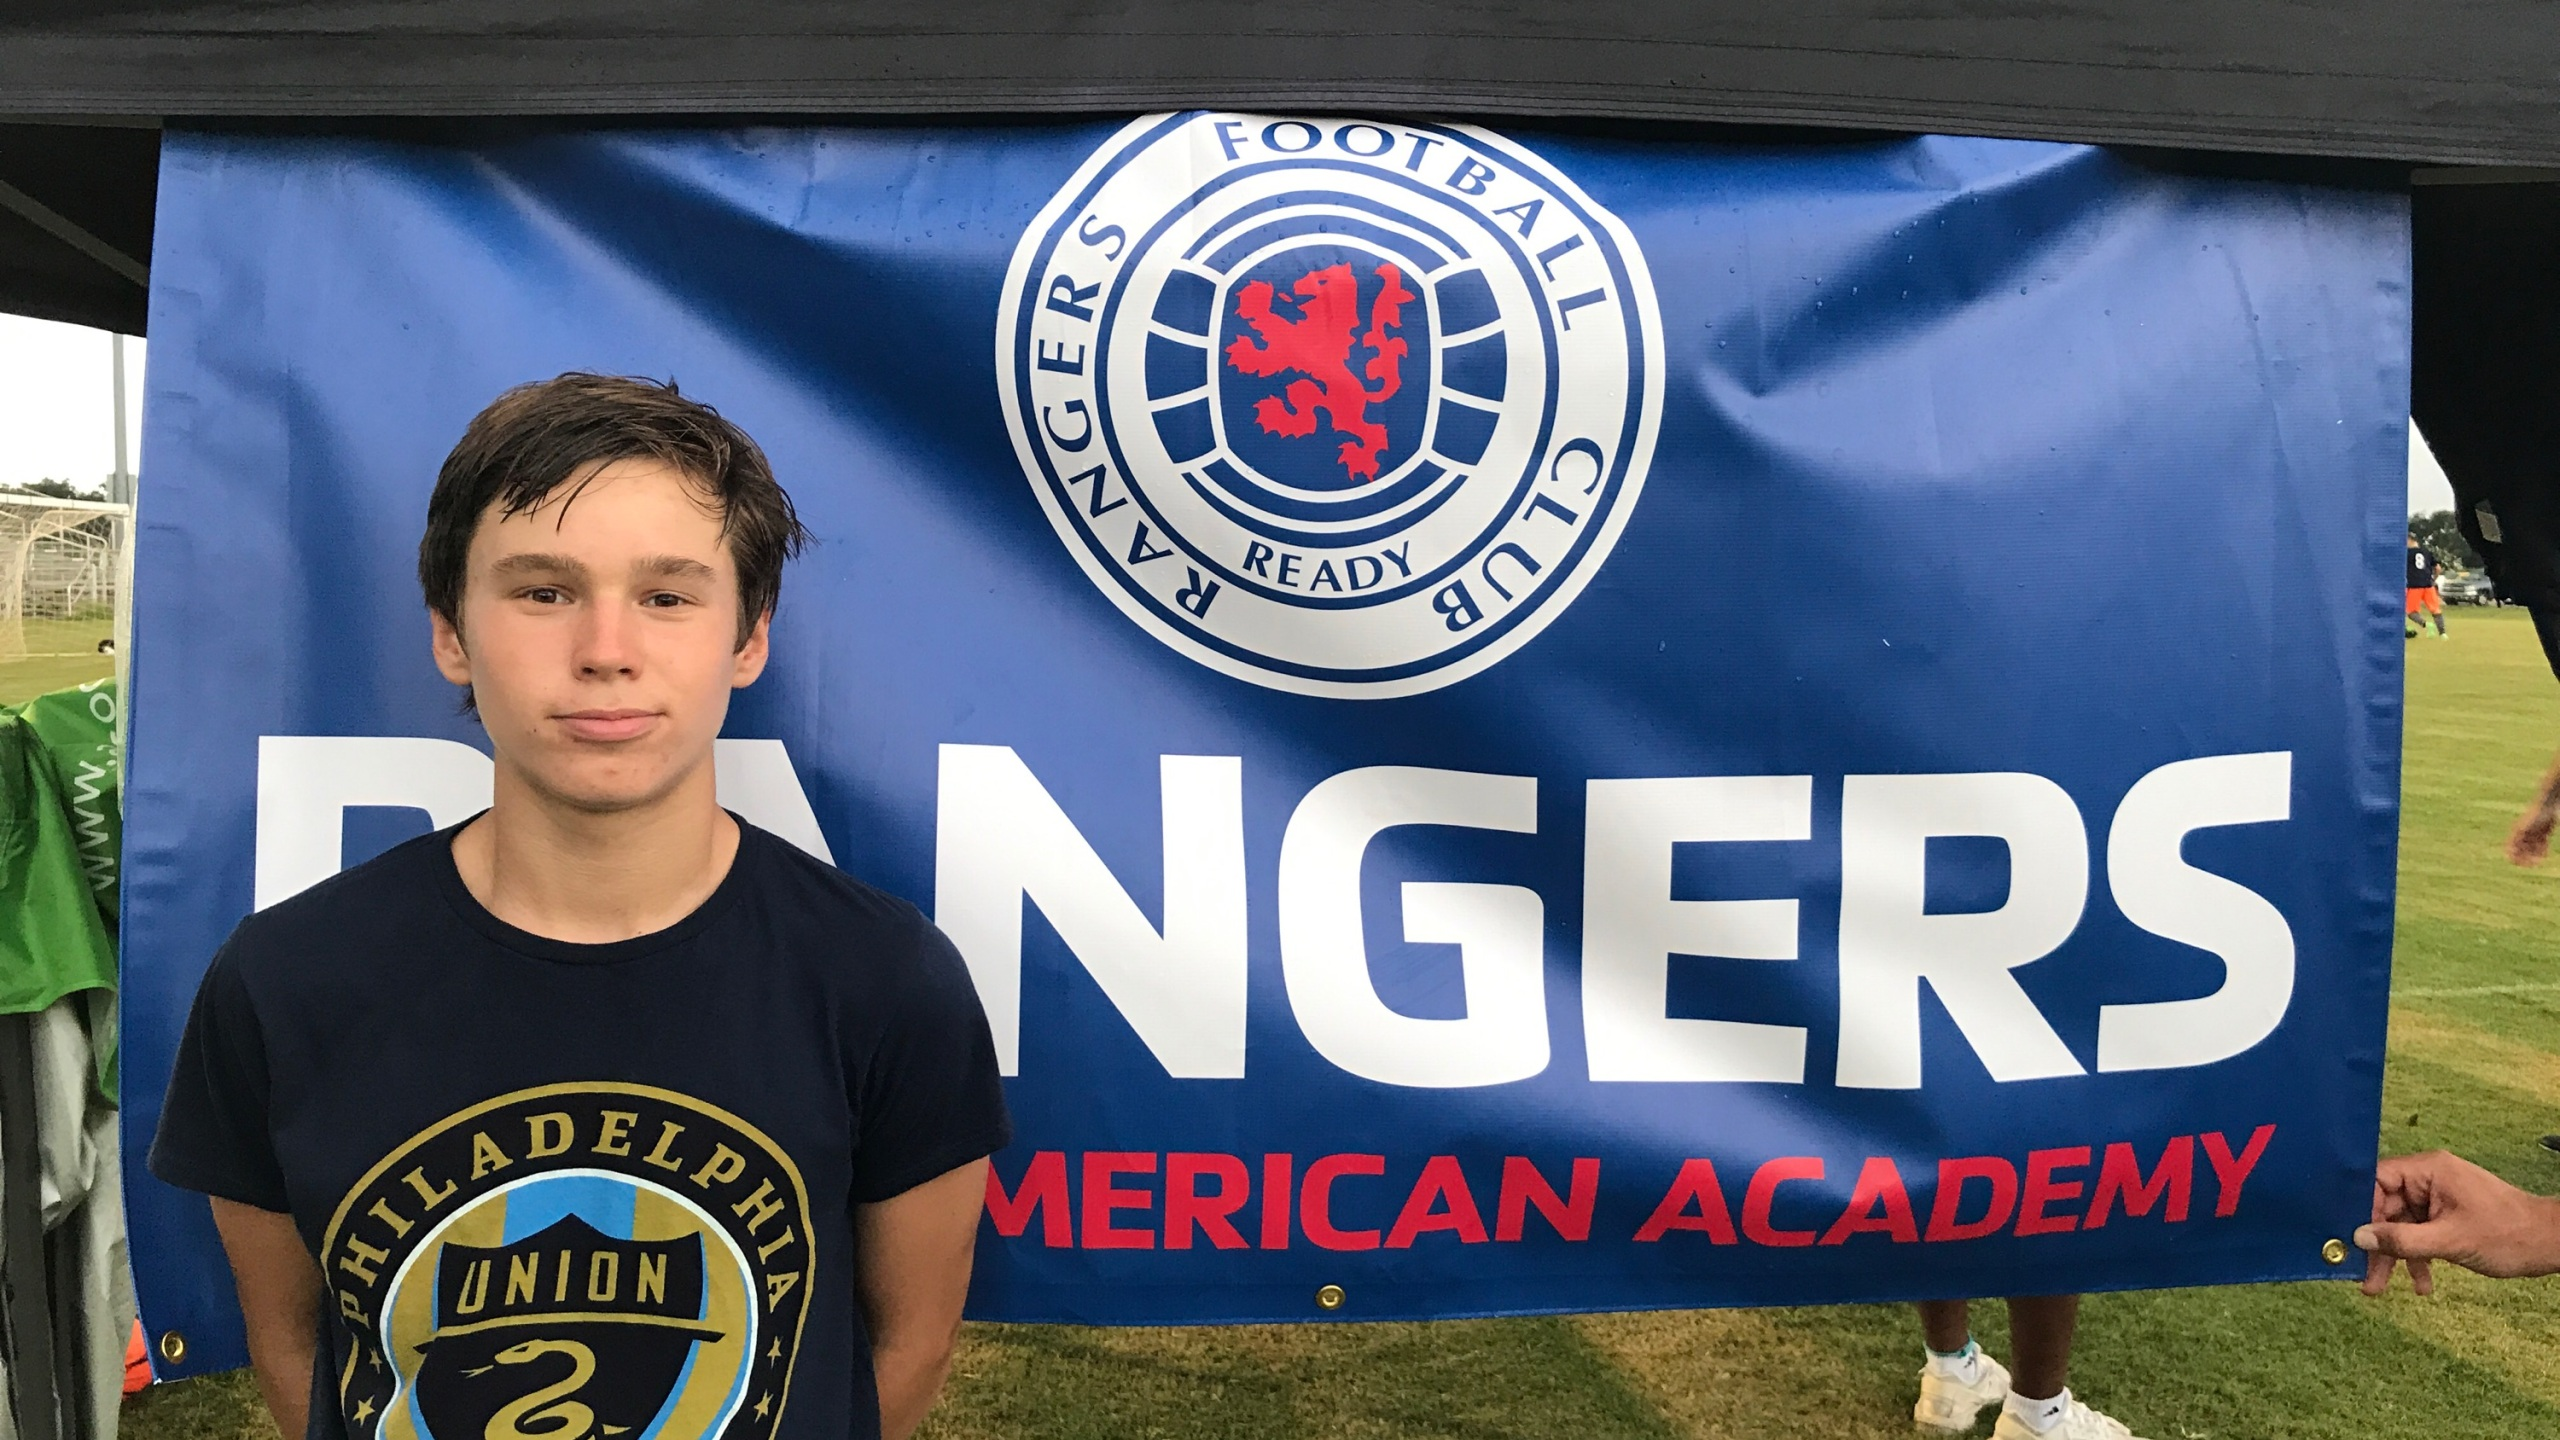 Local 13-Year-Old Soccer Player Discovered by Union Youth Academy